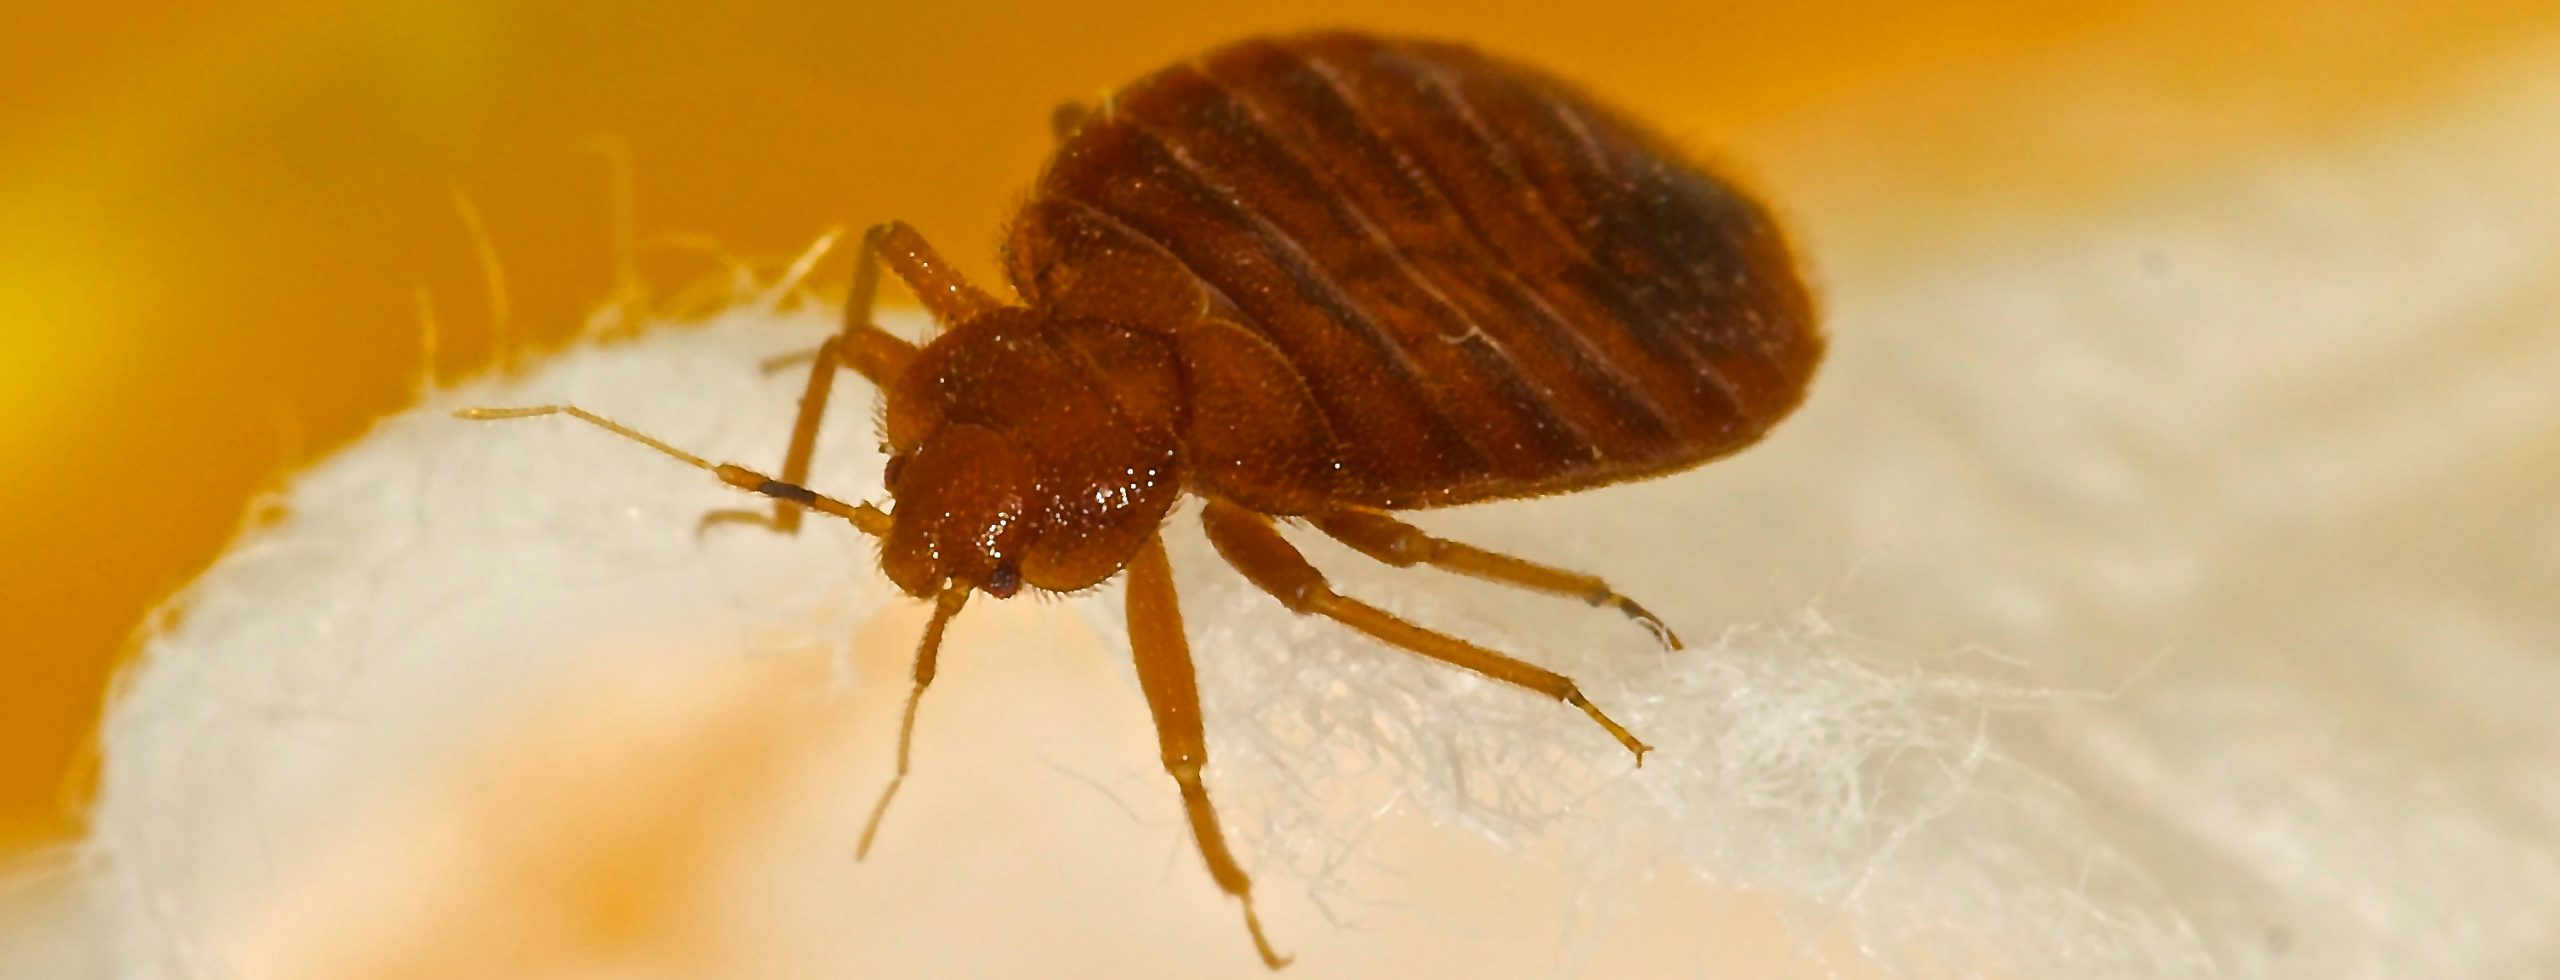 BEYOND THE BED: OTHER PLACES BED BUGS MAY BE HIDING